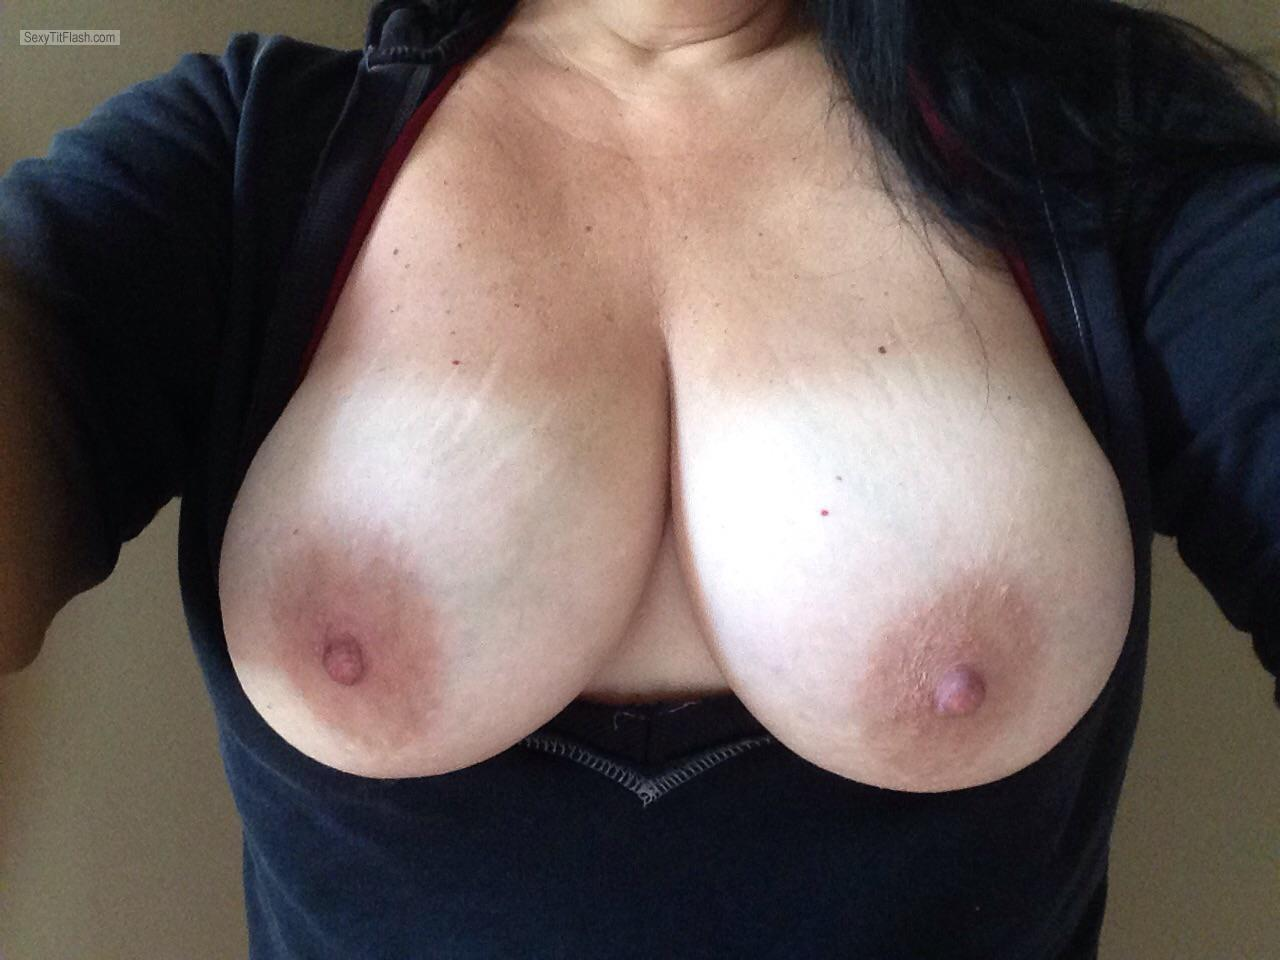 Tit Flash: My Tanlined Big Tits (Selfie) - Sexy Slut from United States